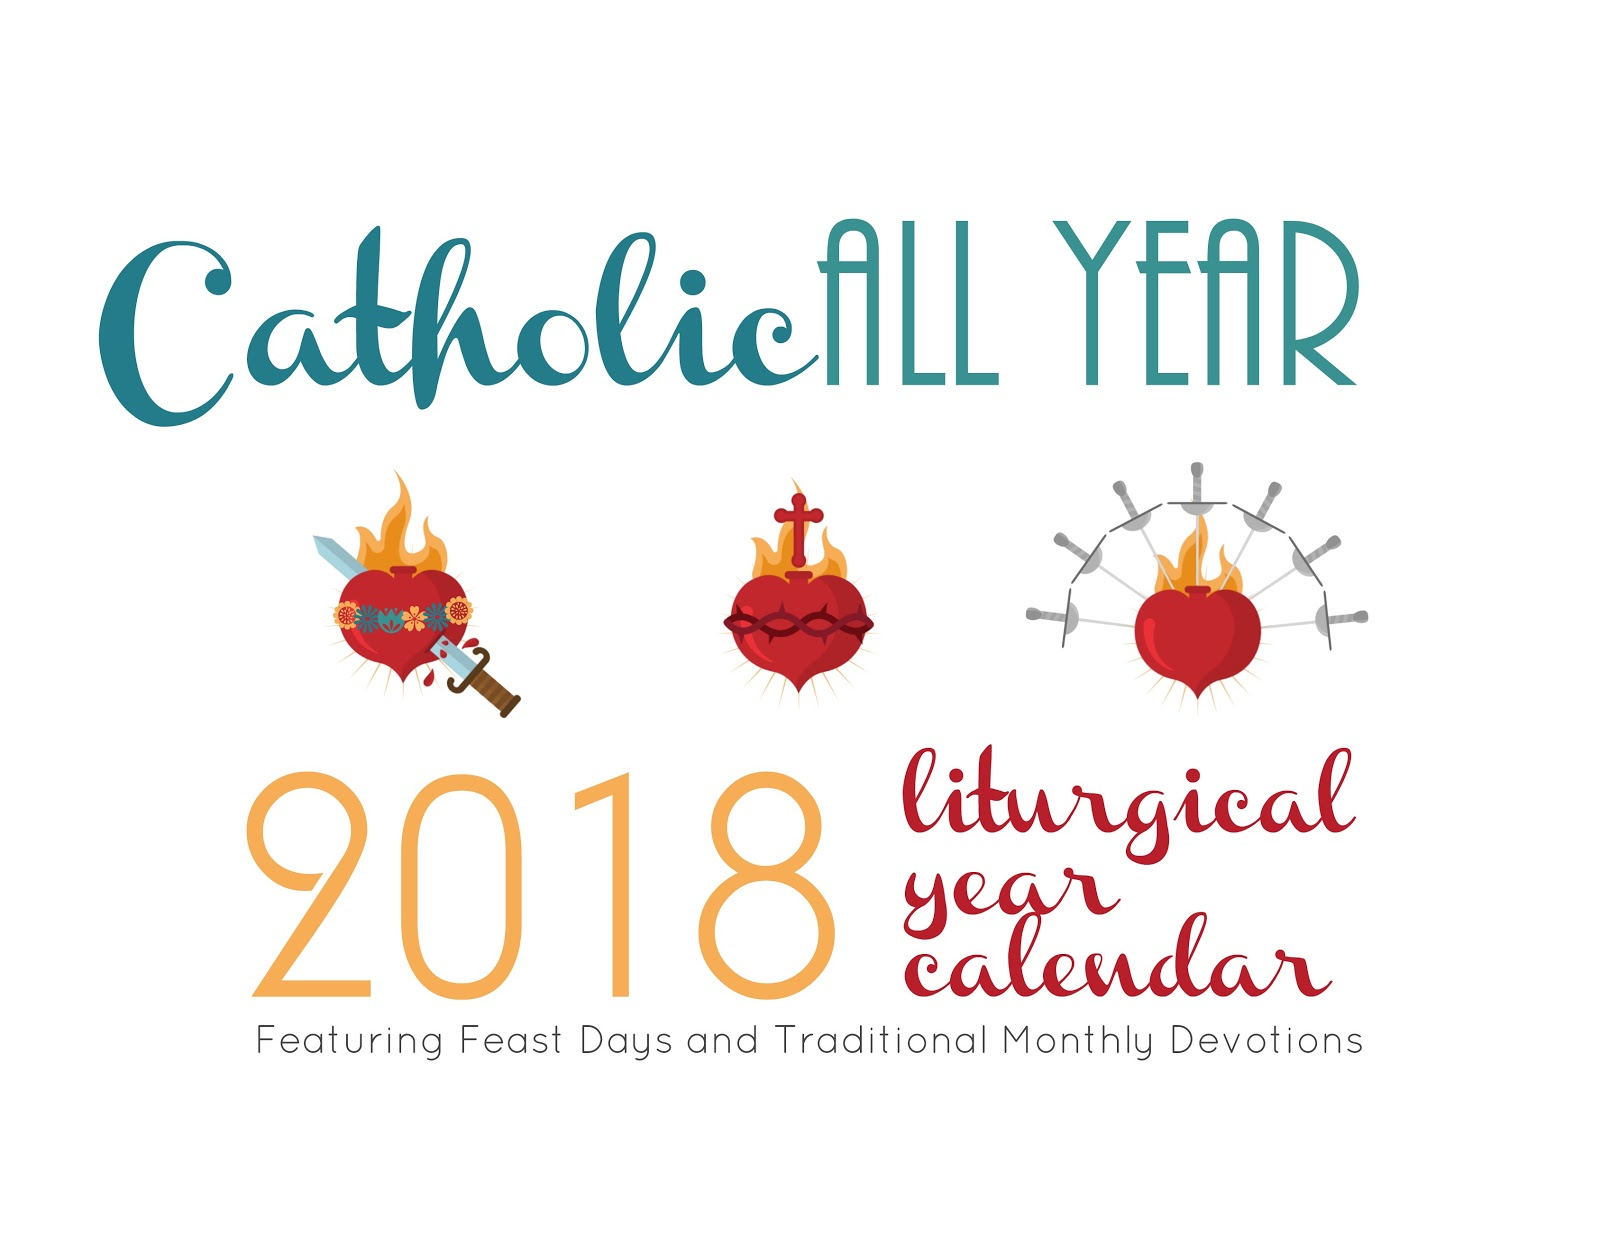 Catholic all year baby steps to living the liturgical year as a it features the all the feasts and fasts of the universal calendar and then some illustrated with images featuring the traditional catholic monthly buycottarizona